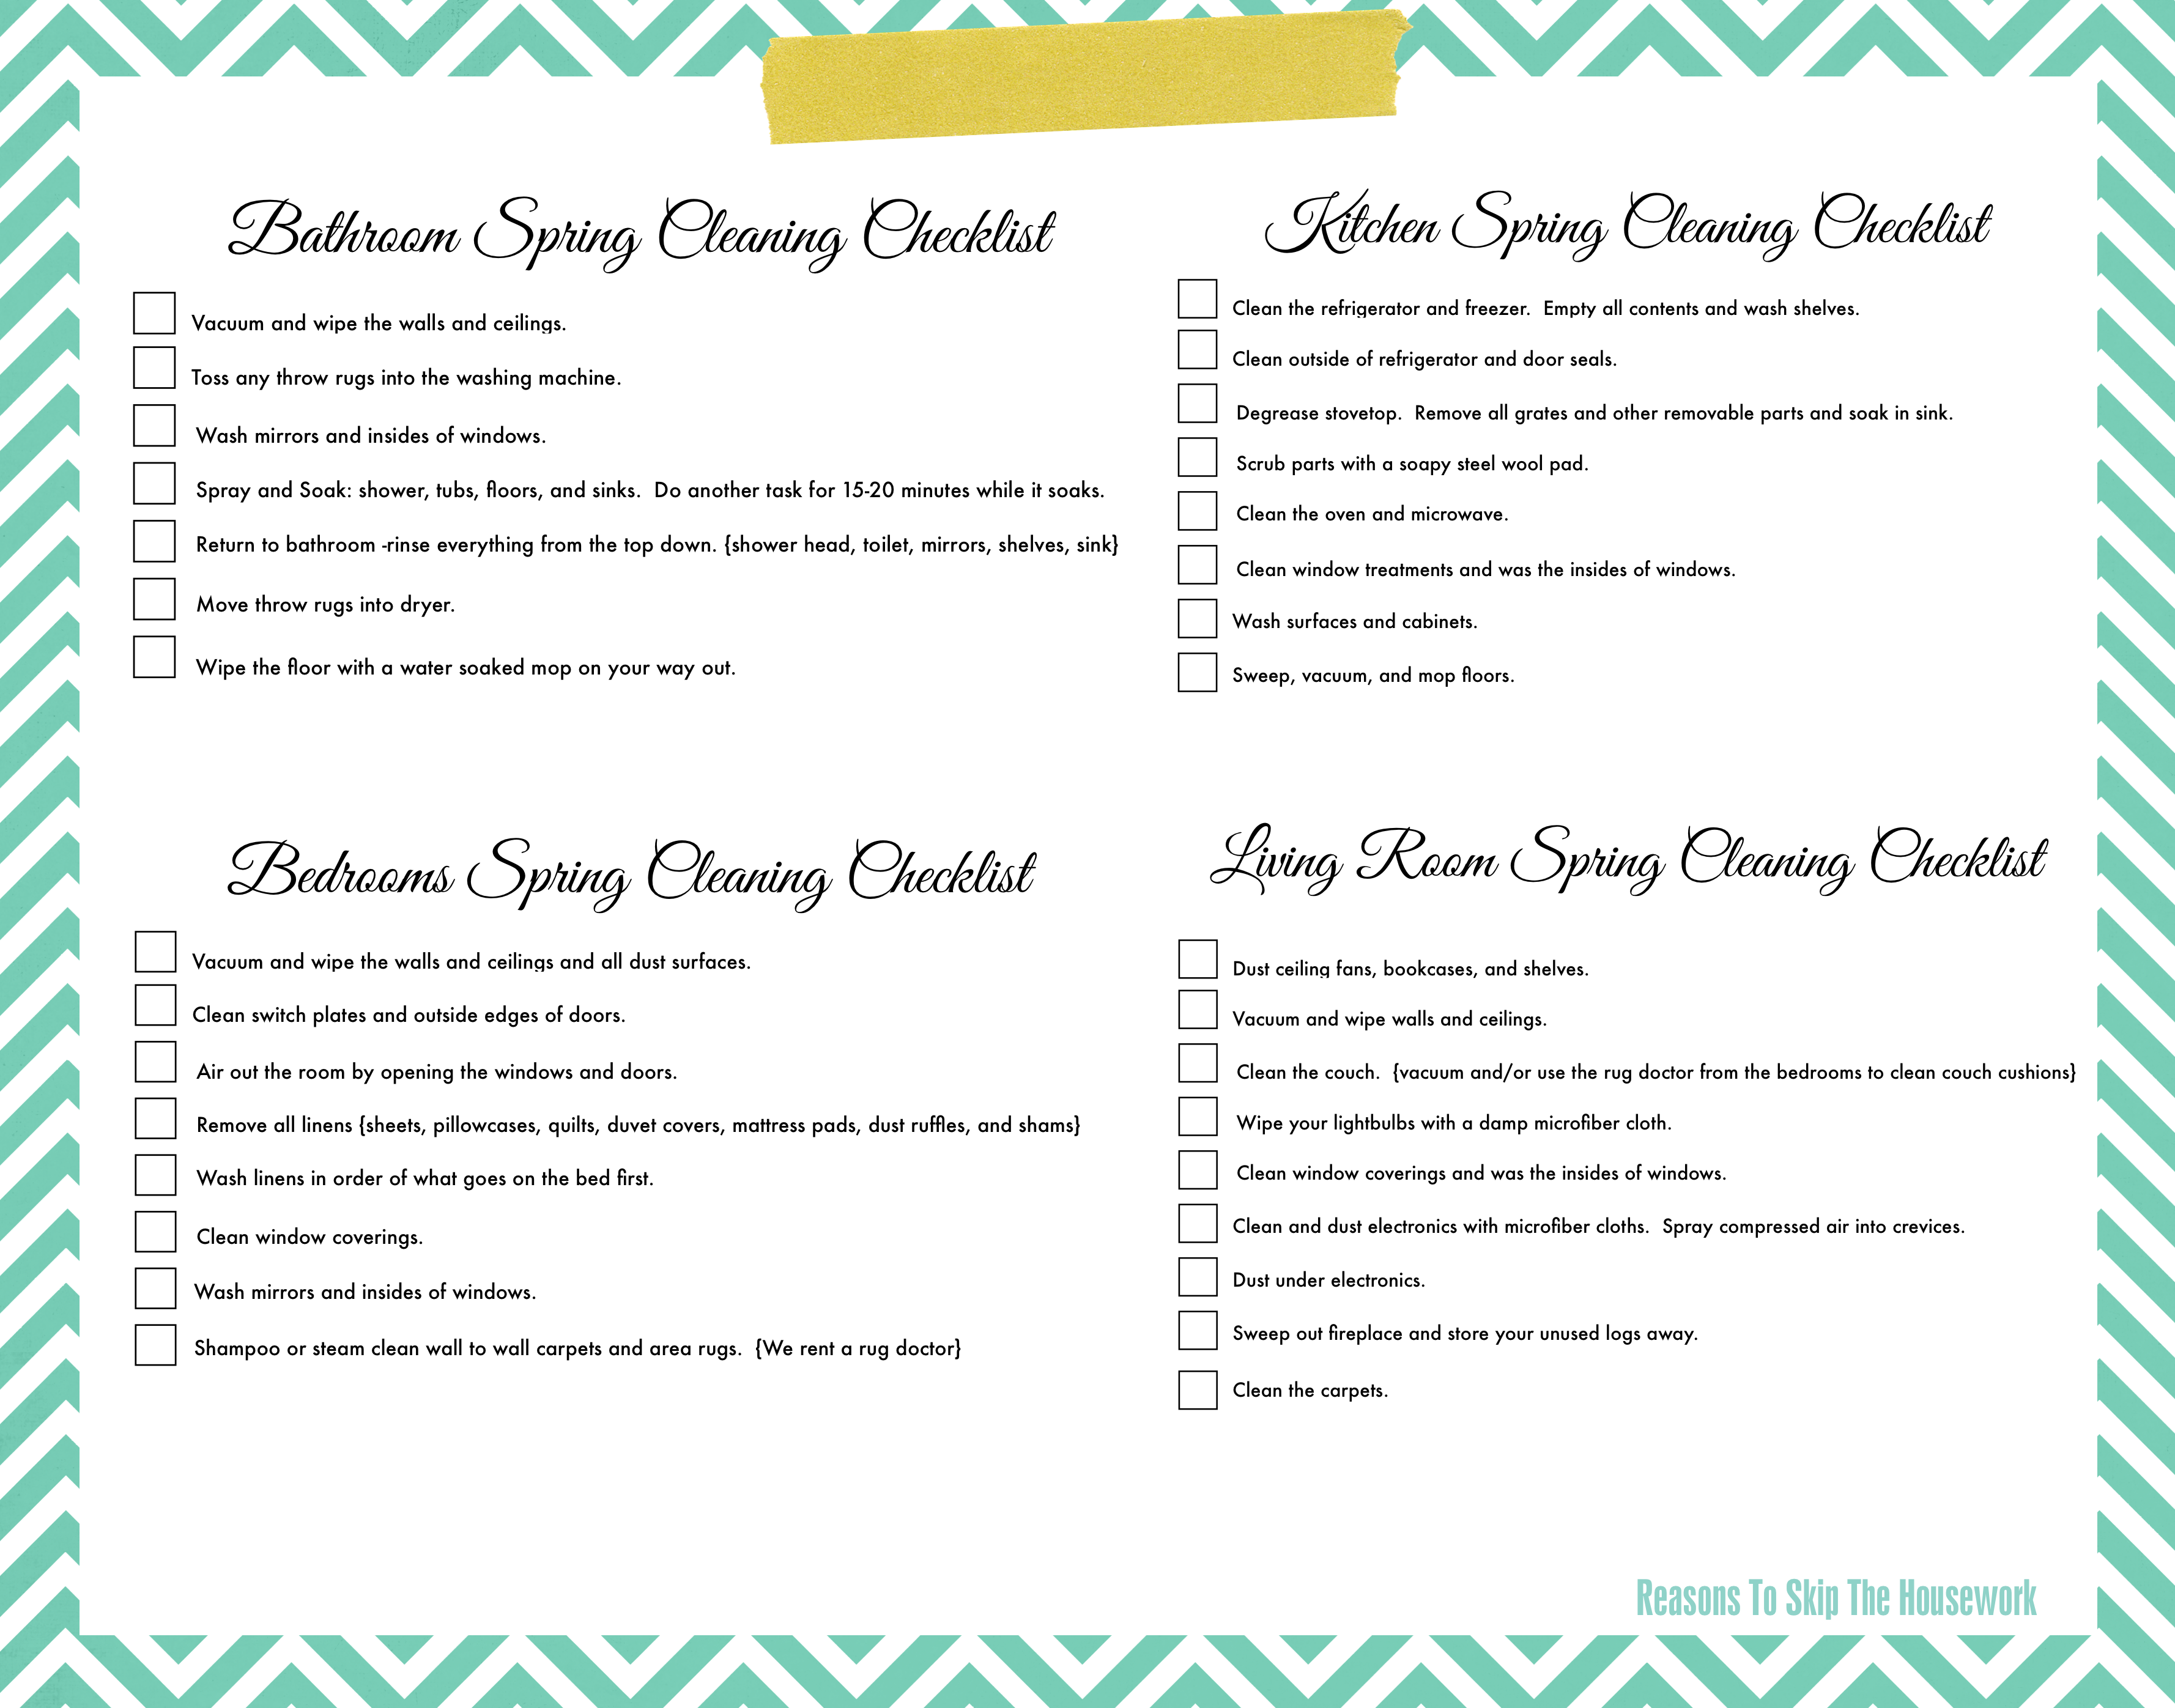 Spring Cleaning List Lazy Girl's Spring Cleaning Checklist Free Printable